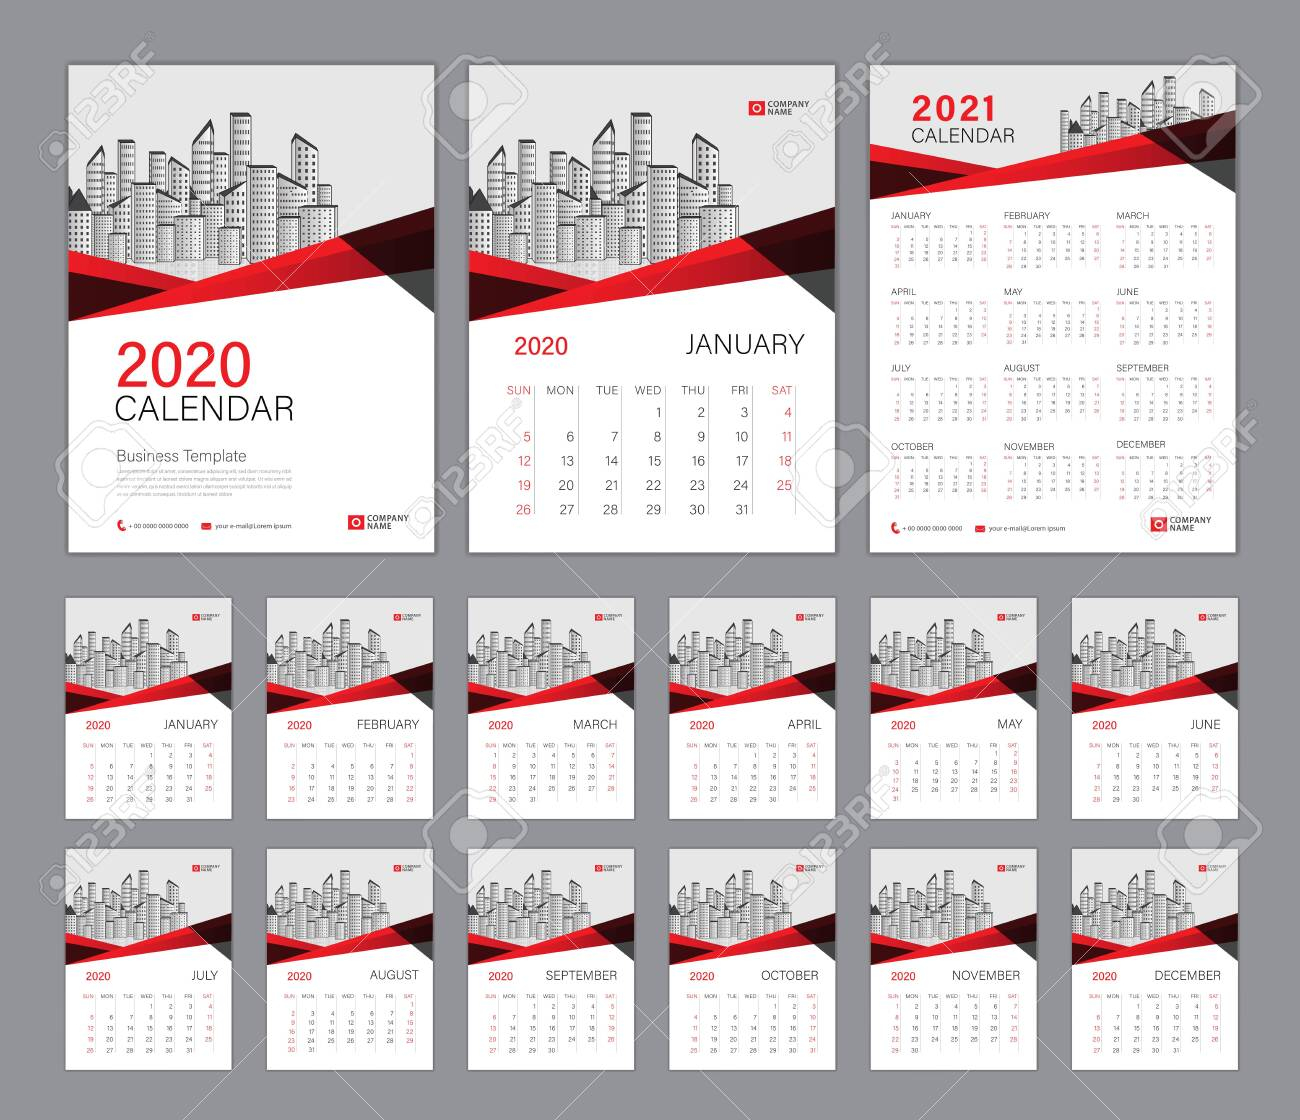 Desk Calendar 2020 Template, Calendar 2021, Cover Design. Week Starts On  Sunday, Set Of 12 Months, Planner Template. Red Polygon Shape Background